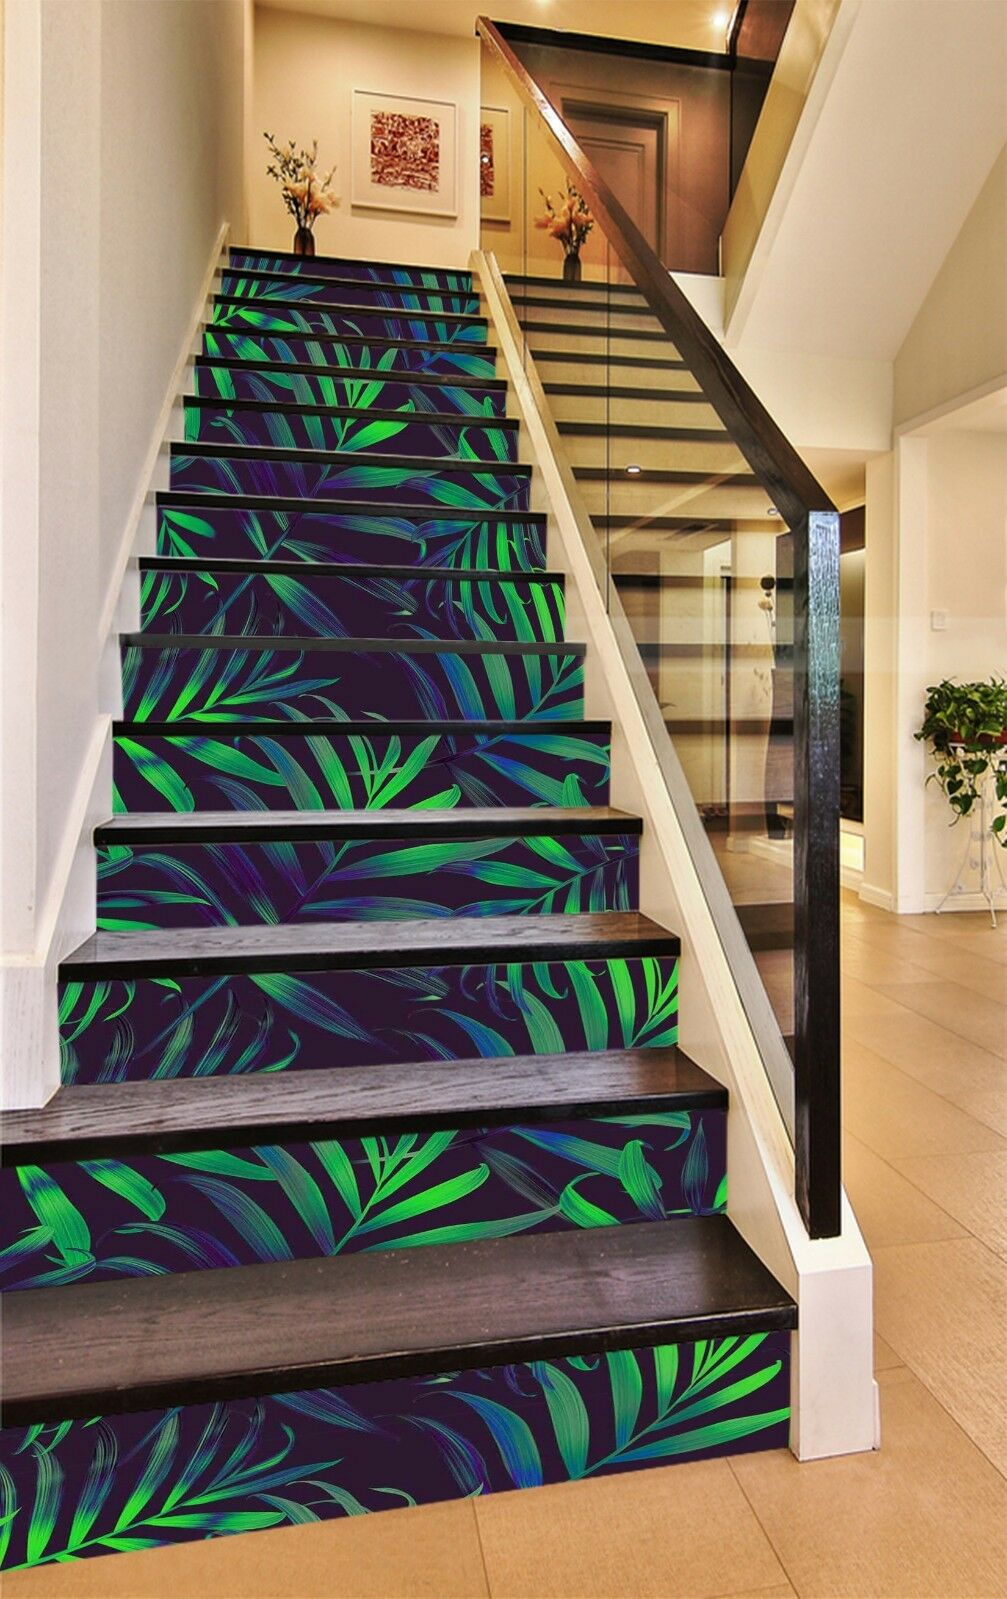 3D Pattern Leaves Stair Risers Decoration Photo Mural Vinyl Decal WandPapier US